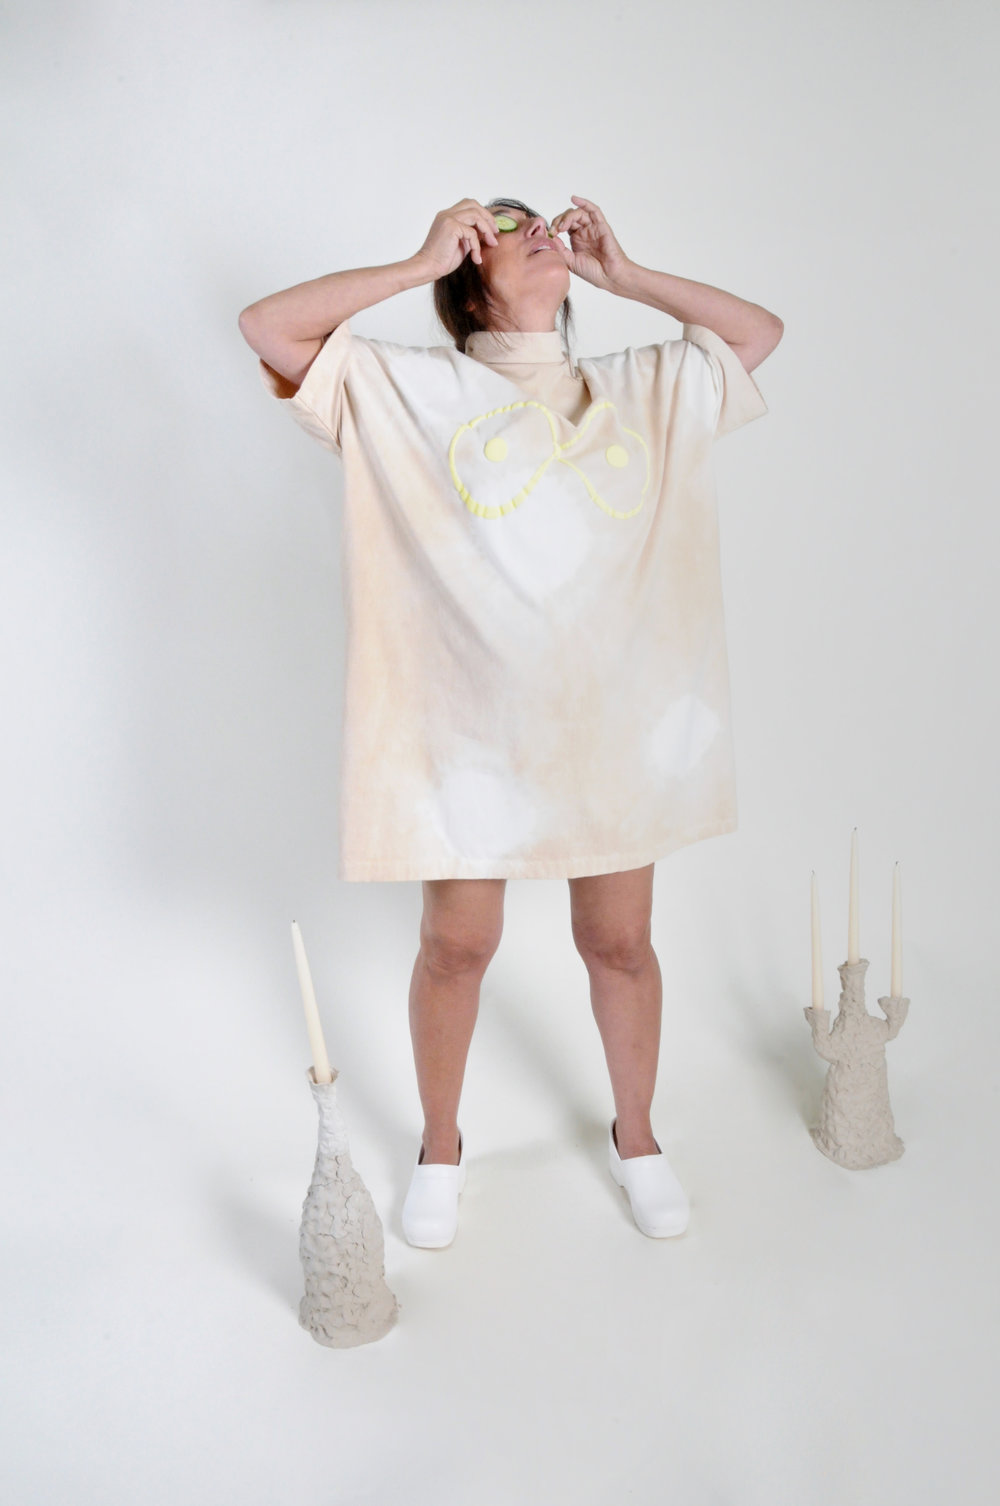 essential dress: beige and white - 0211COLOR : BEIGE AND WHITE TIE DYE WITH LIME GREEN PUFF PRINTFABRIC : COTTON JERSEYCONTENT : 100% ORGANIC COTTONWHOLESALE $85 / RETAIL $170SIZES : ONE SIZE / FITS XS - XL